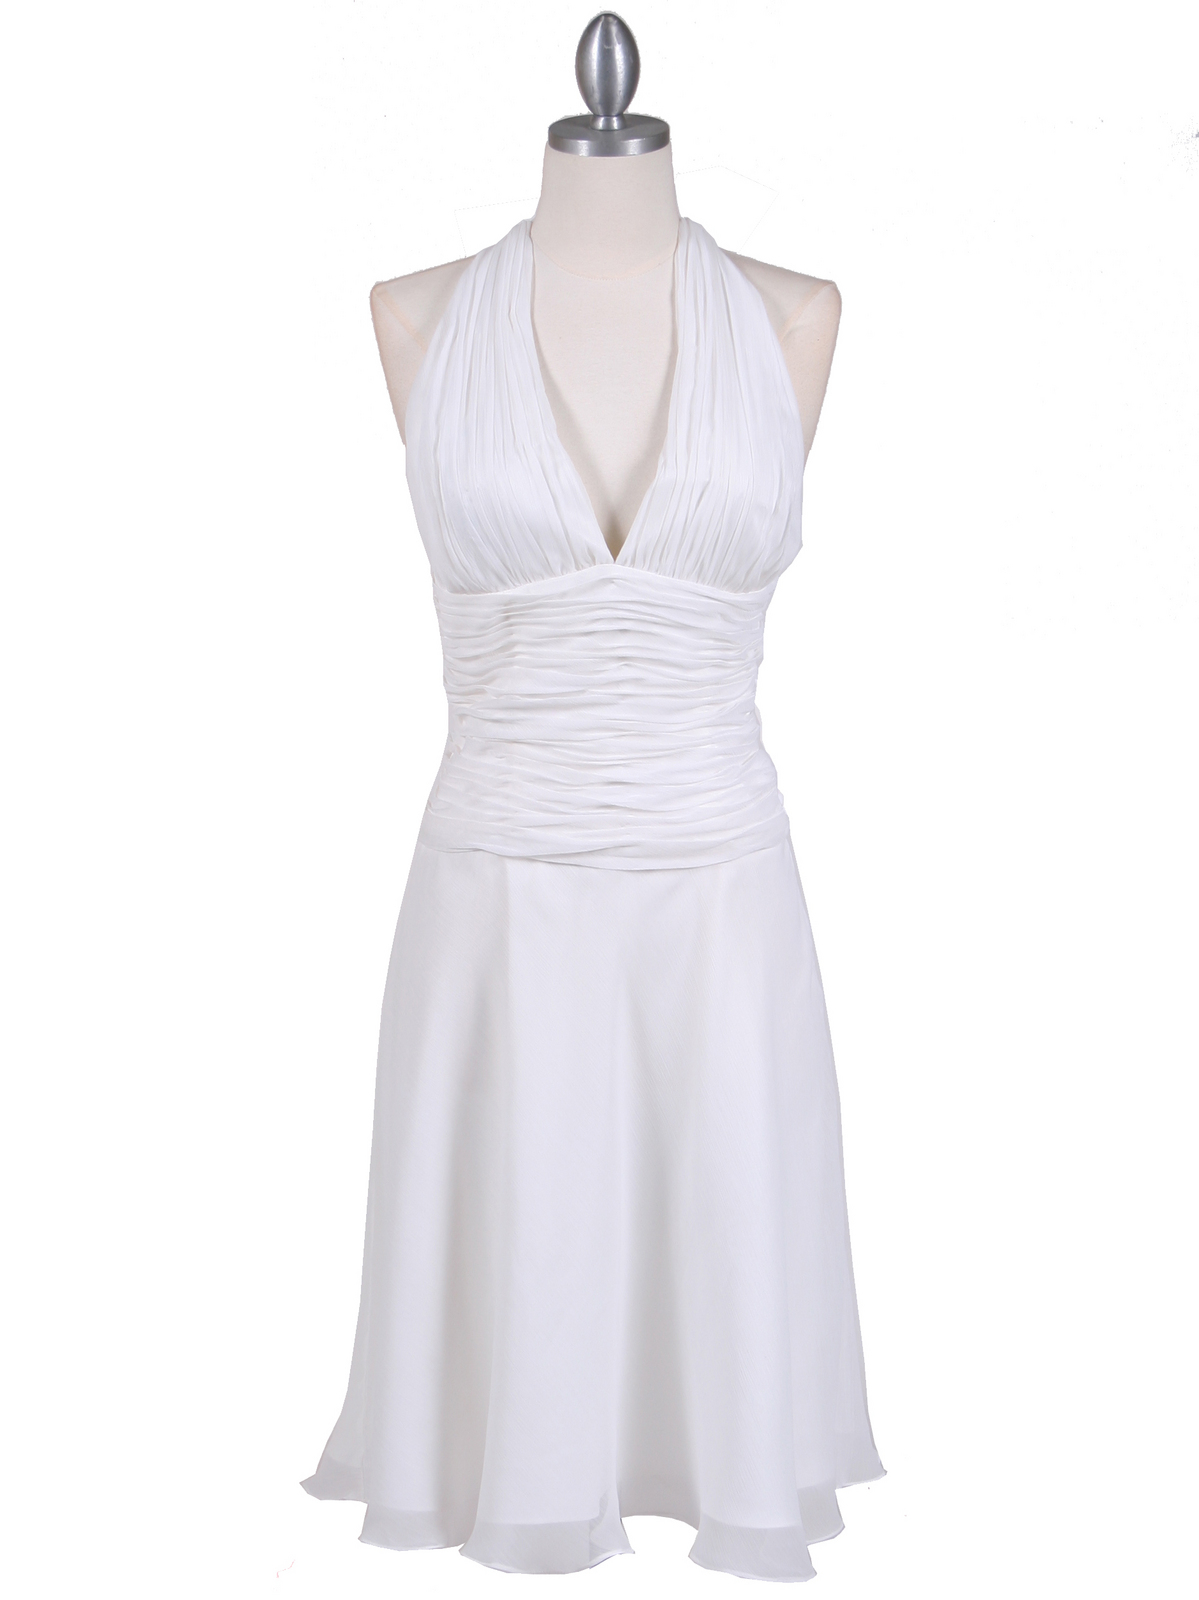 653c79a5171 Ivory Chiffon Halter Cocktail Dress